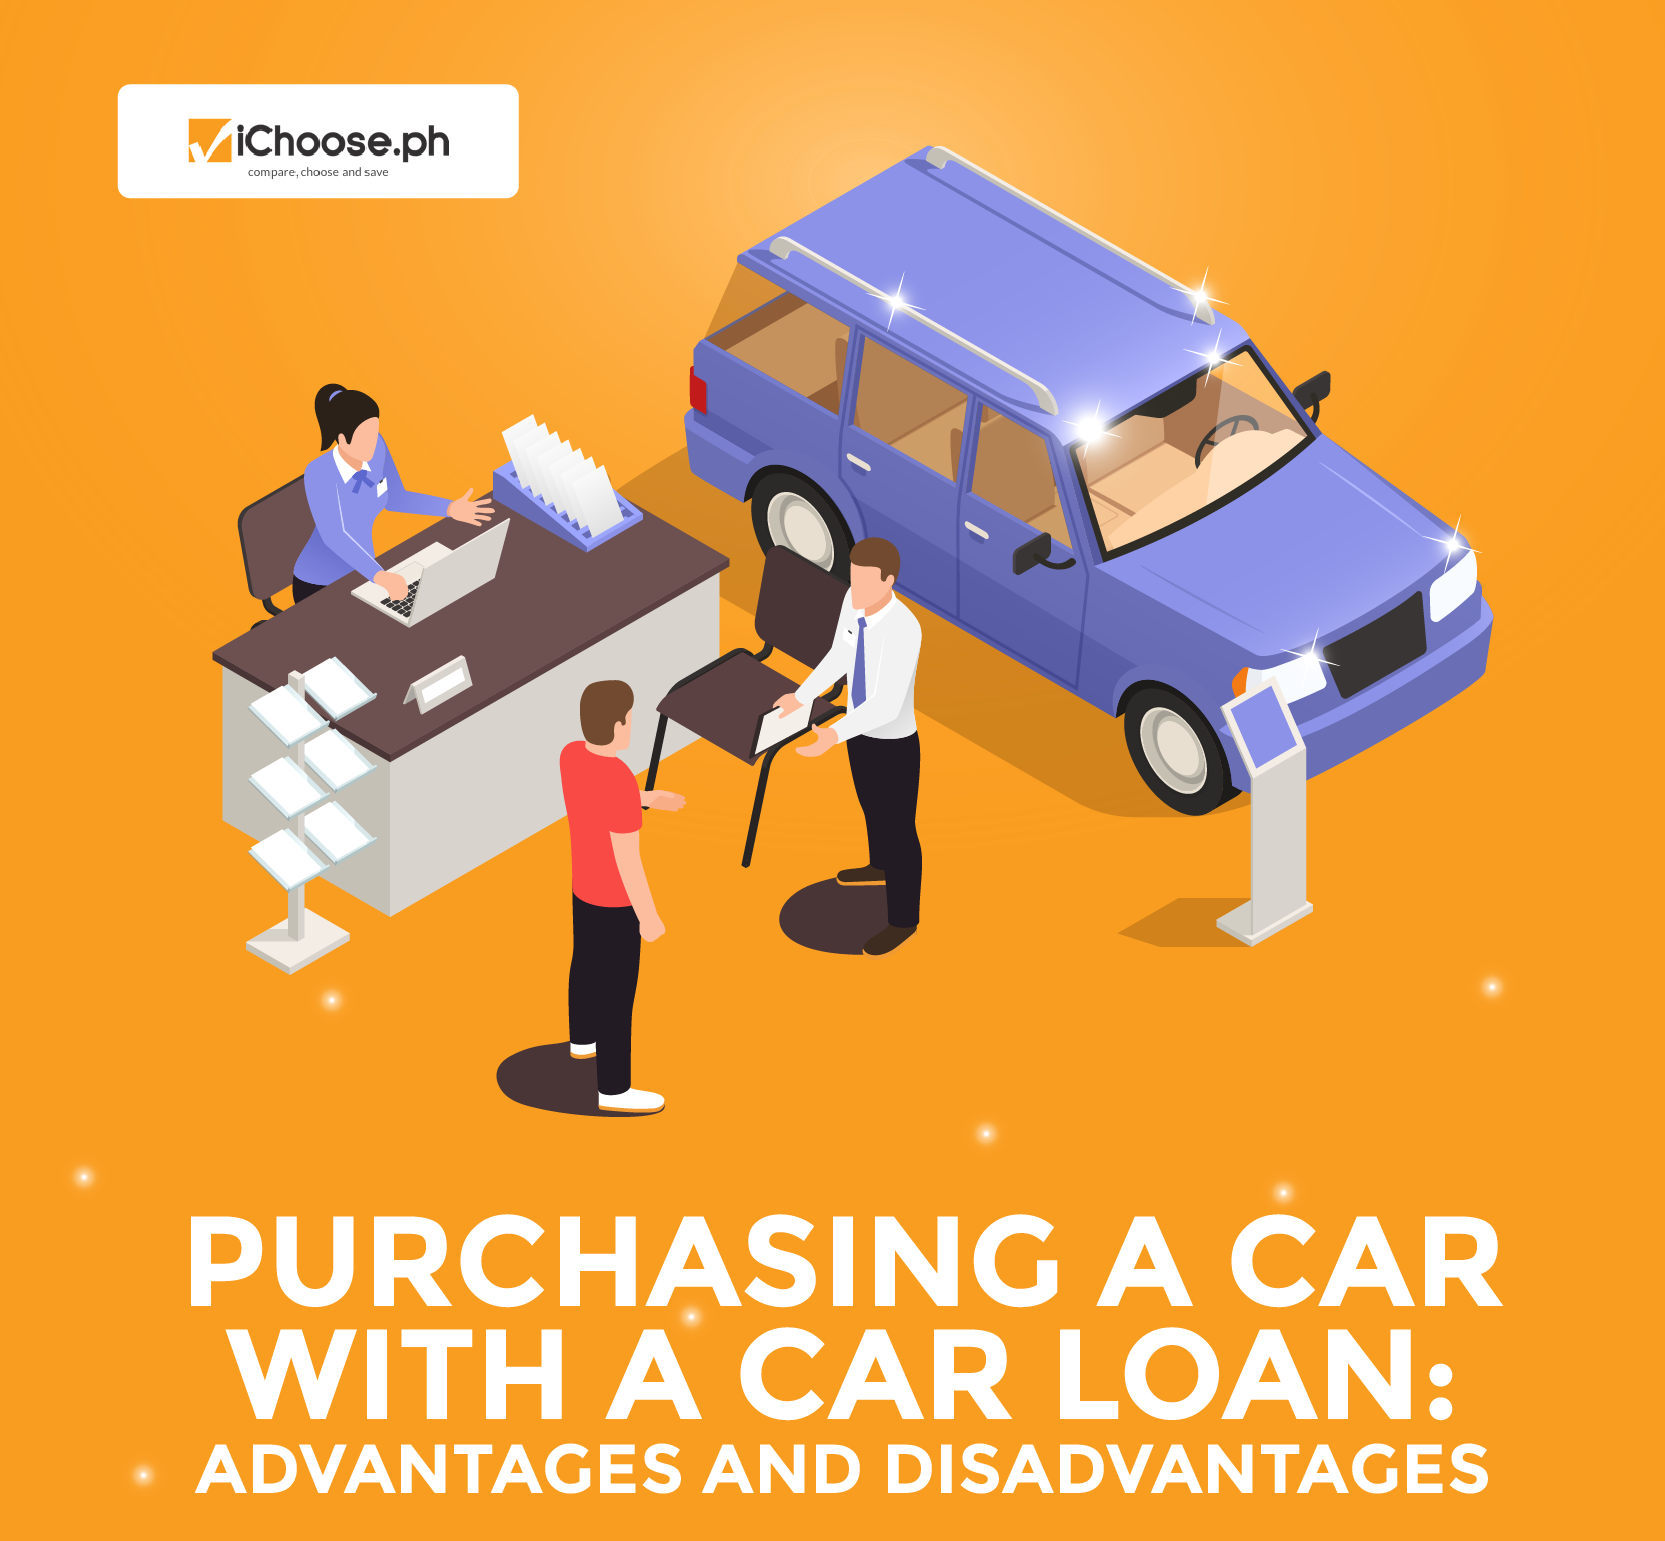 Purchasing_a_Car_with_a_Car_Loan_-_Advantages_and_Disadvantages featured image